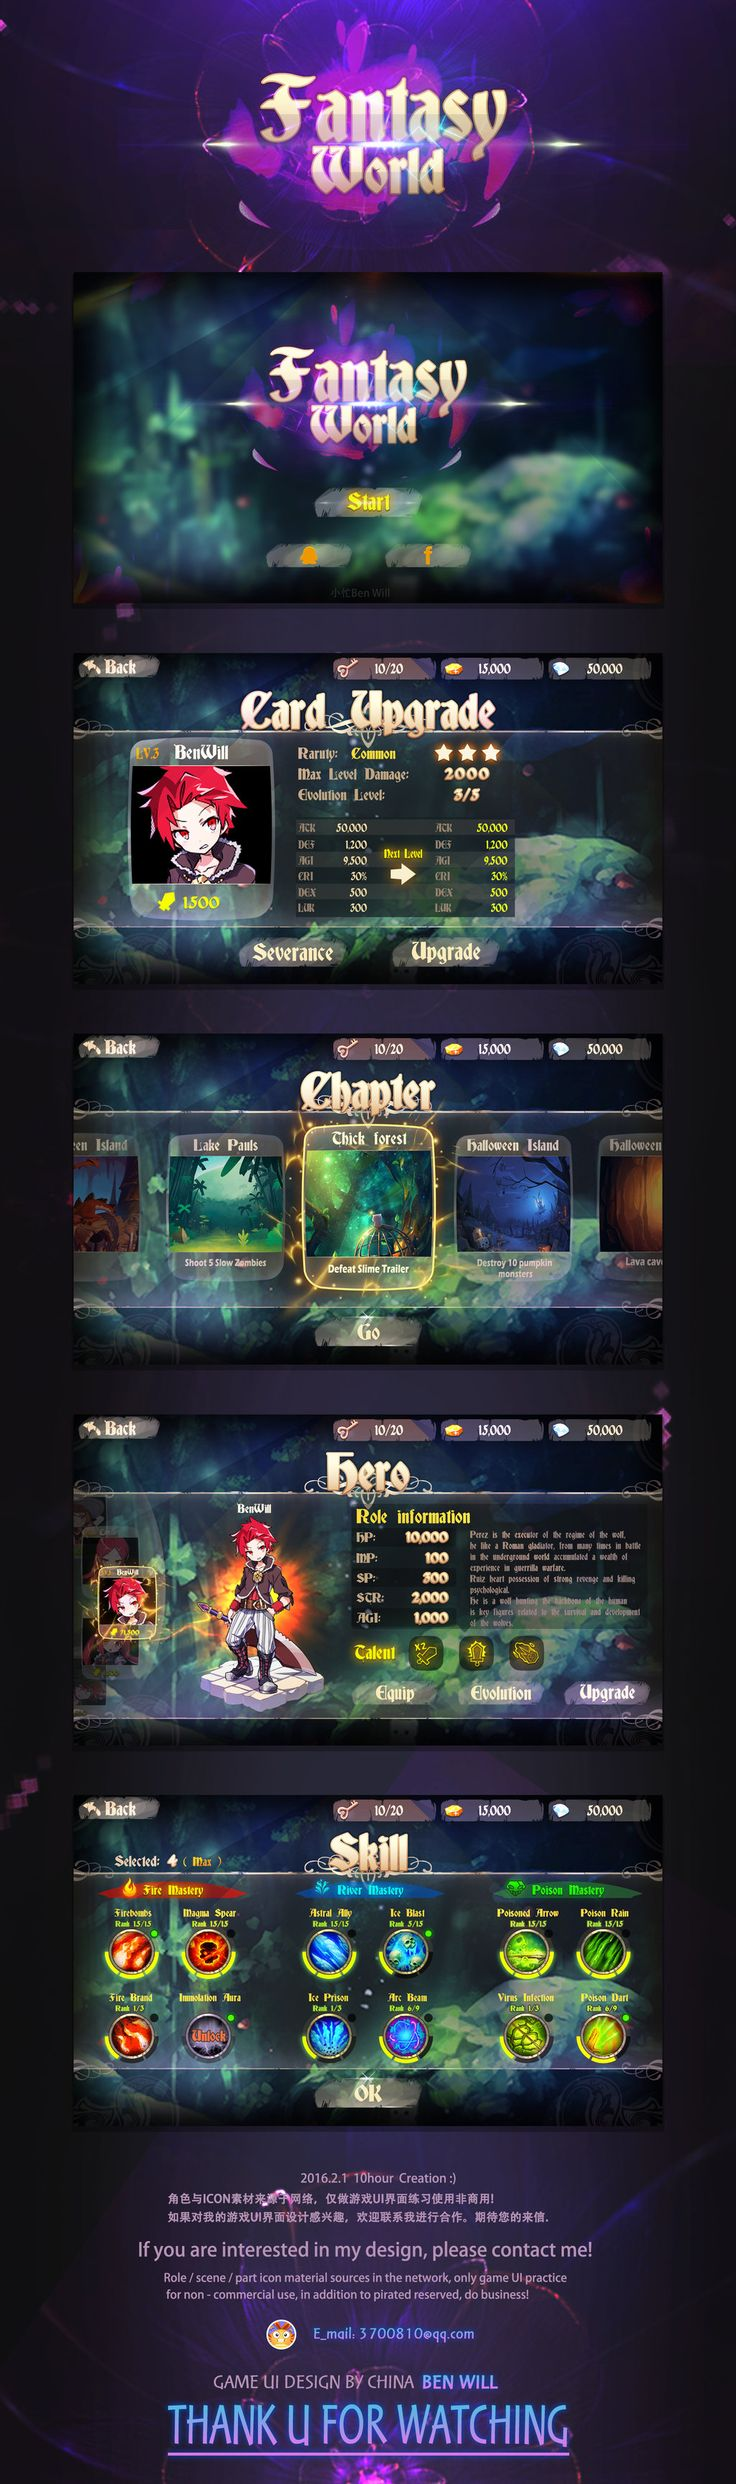 Mobile game commercial - Fantasy World Game Benwill Game Ui Design By Uiekii On Deviantart